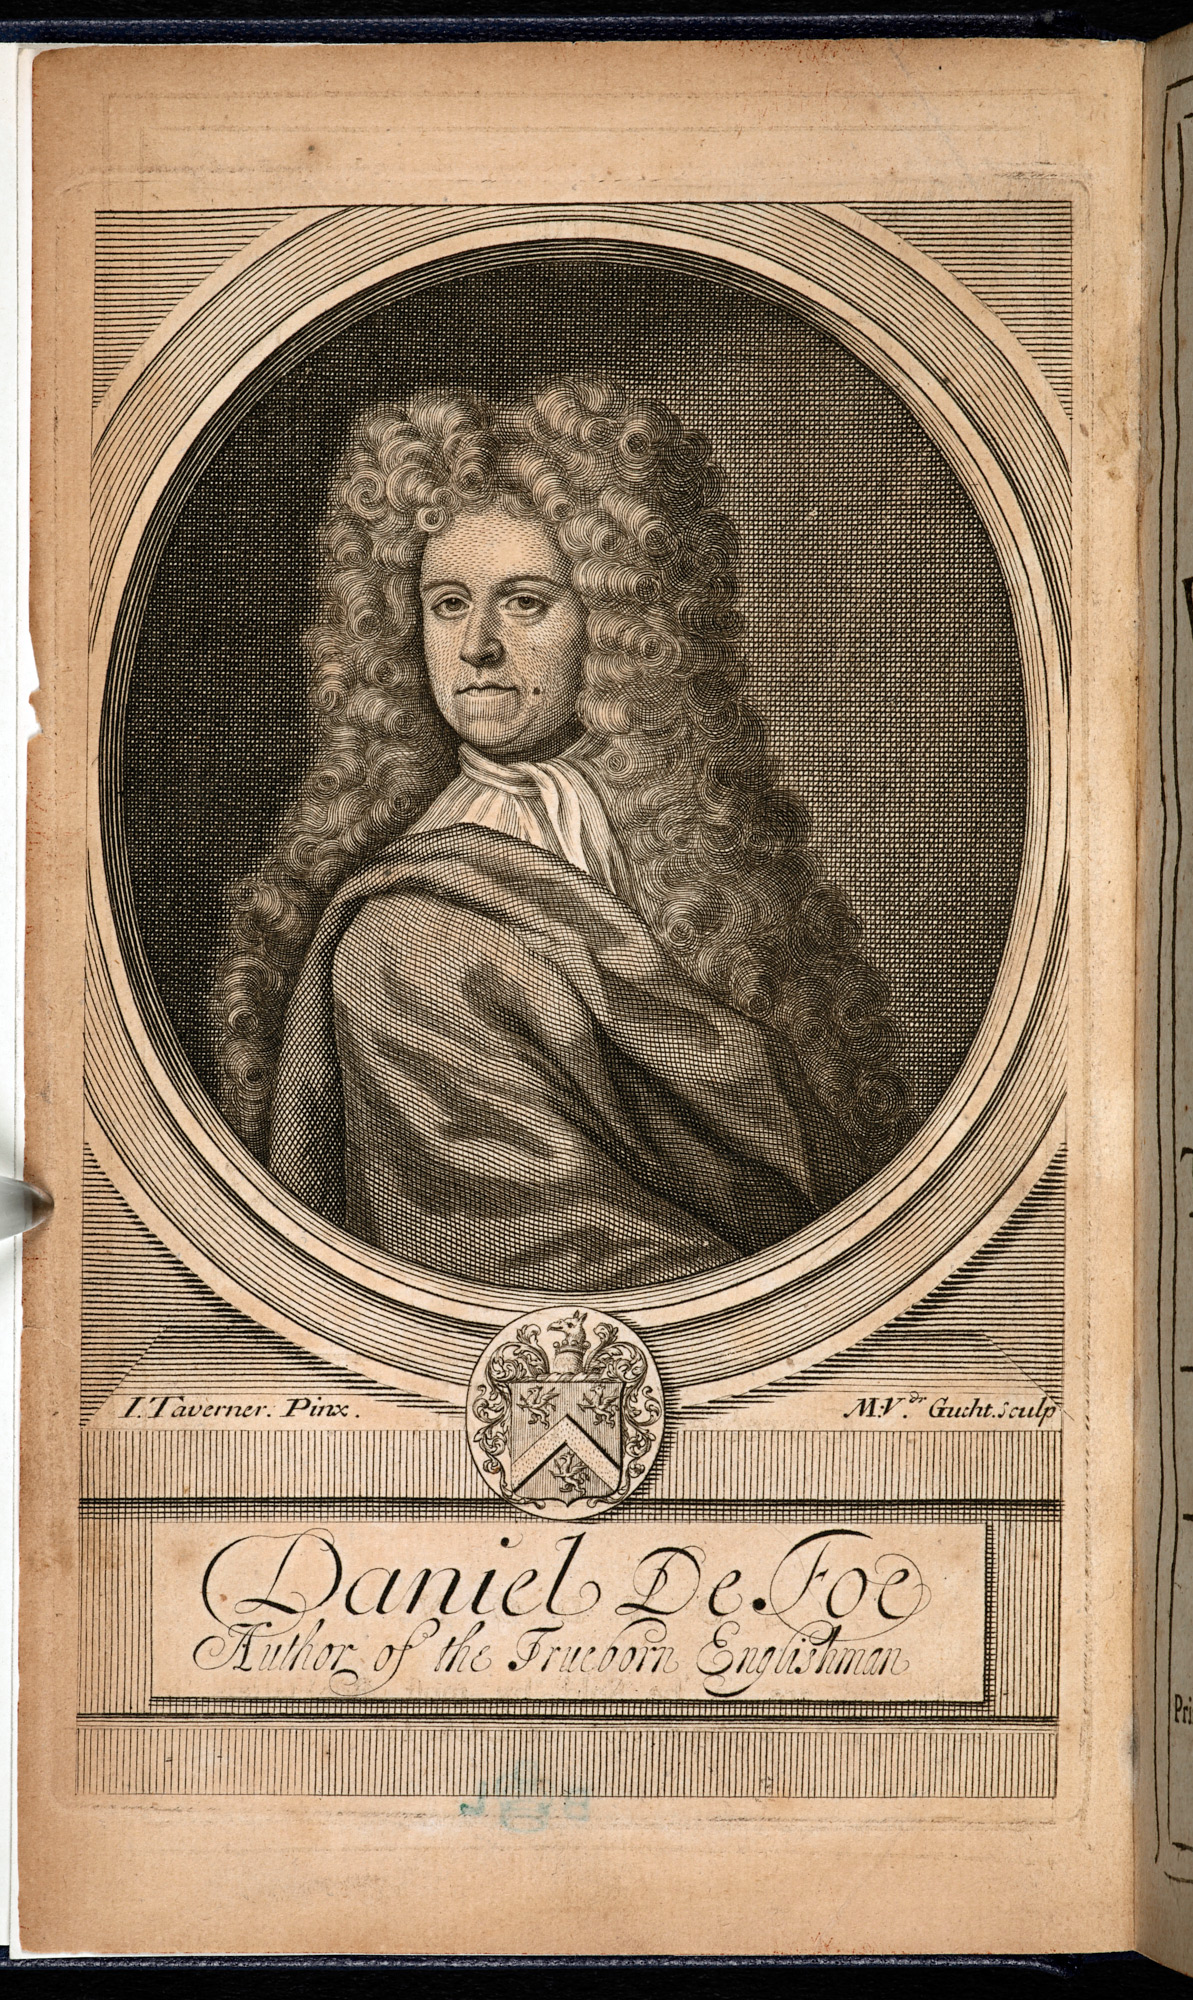 Engraving of Daniel Defoe, 1703